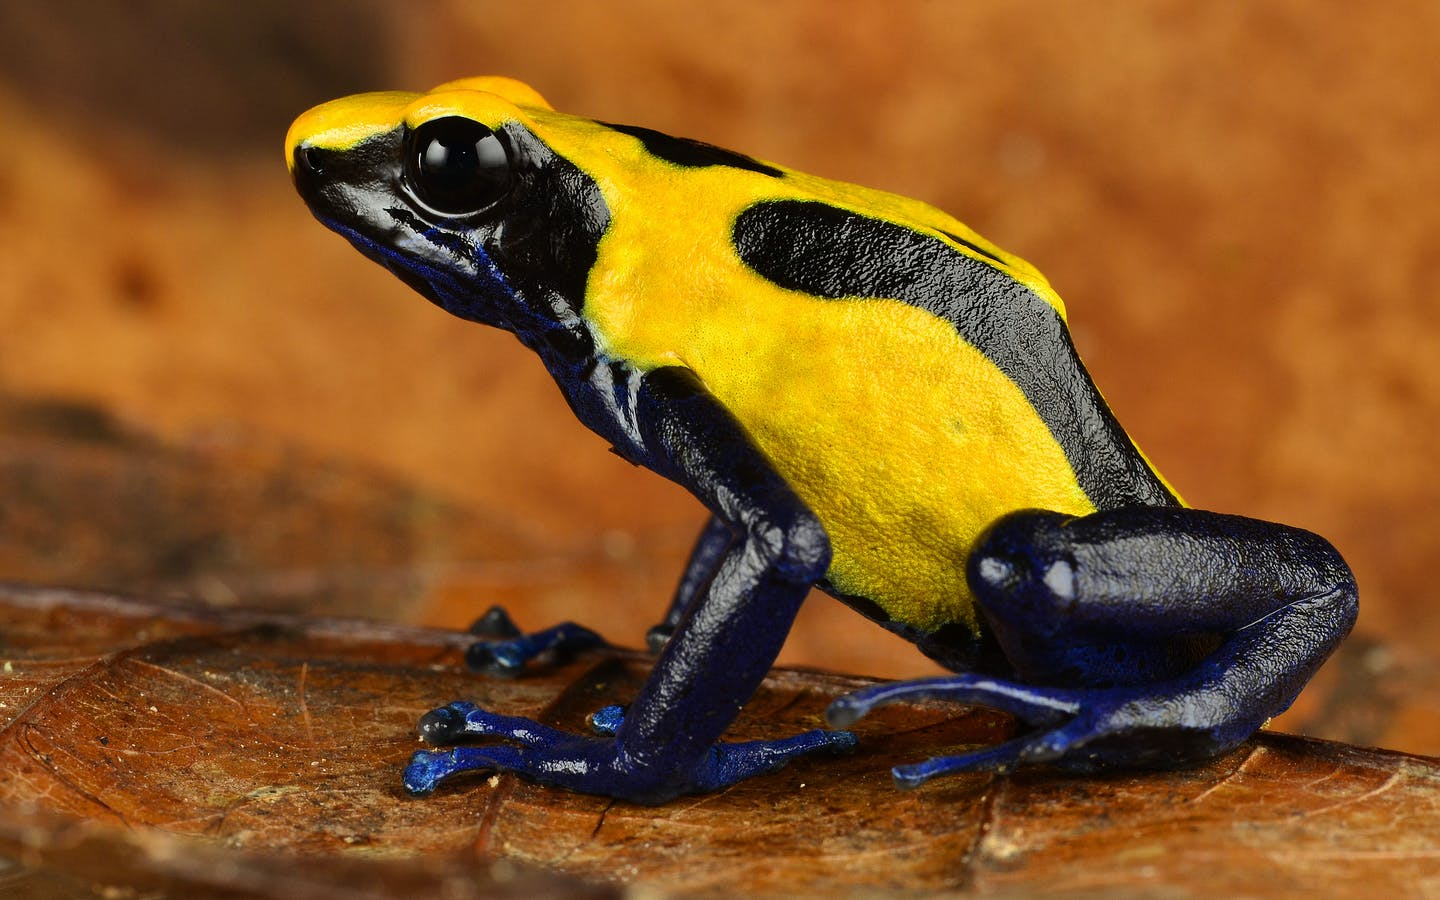 Colorful poison-dart frogs are among the most spectacular of South America's biodiversity.